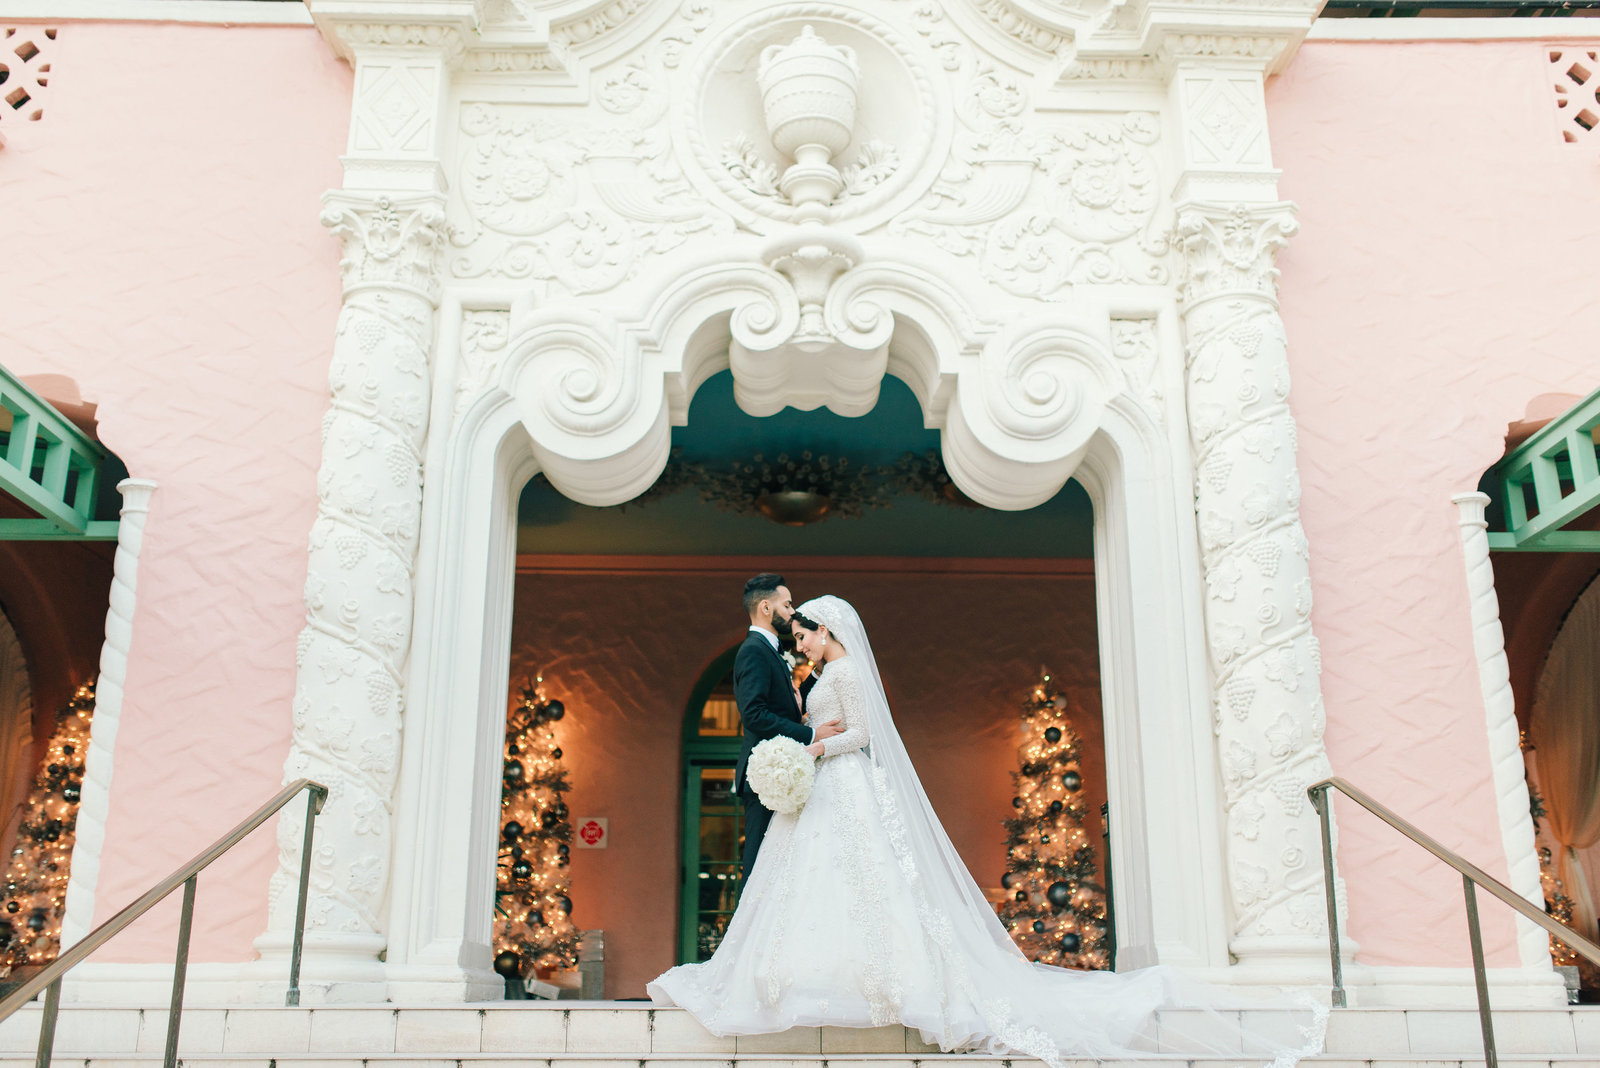 LTP_6126Noor & Ahmad Vinoy Renaissance Wedding in St. Petersburg by Ledia Tashi Photography